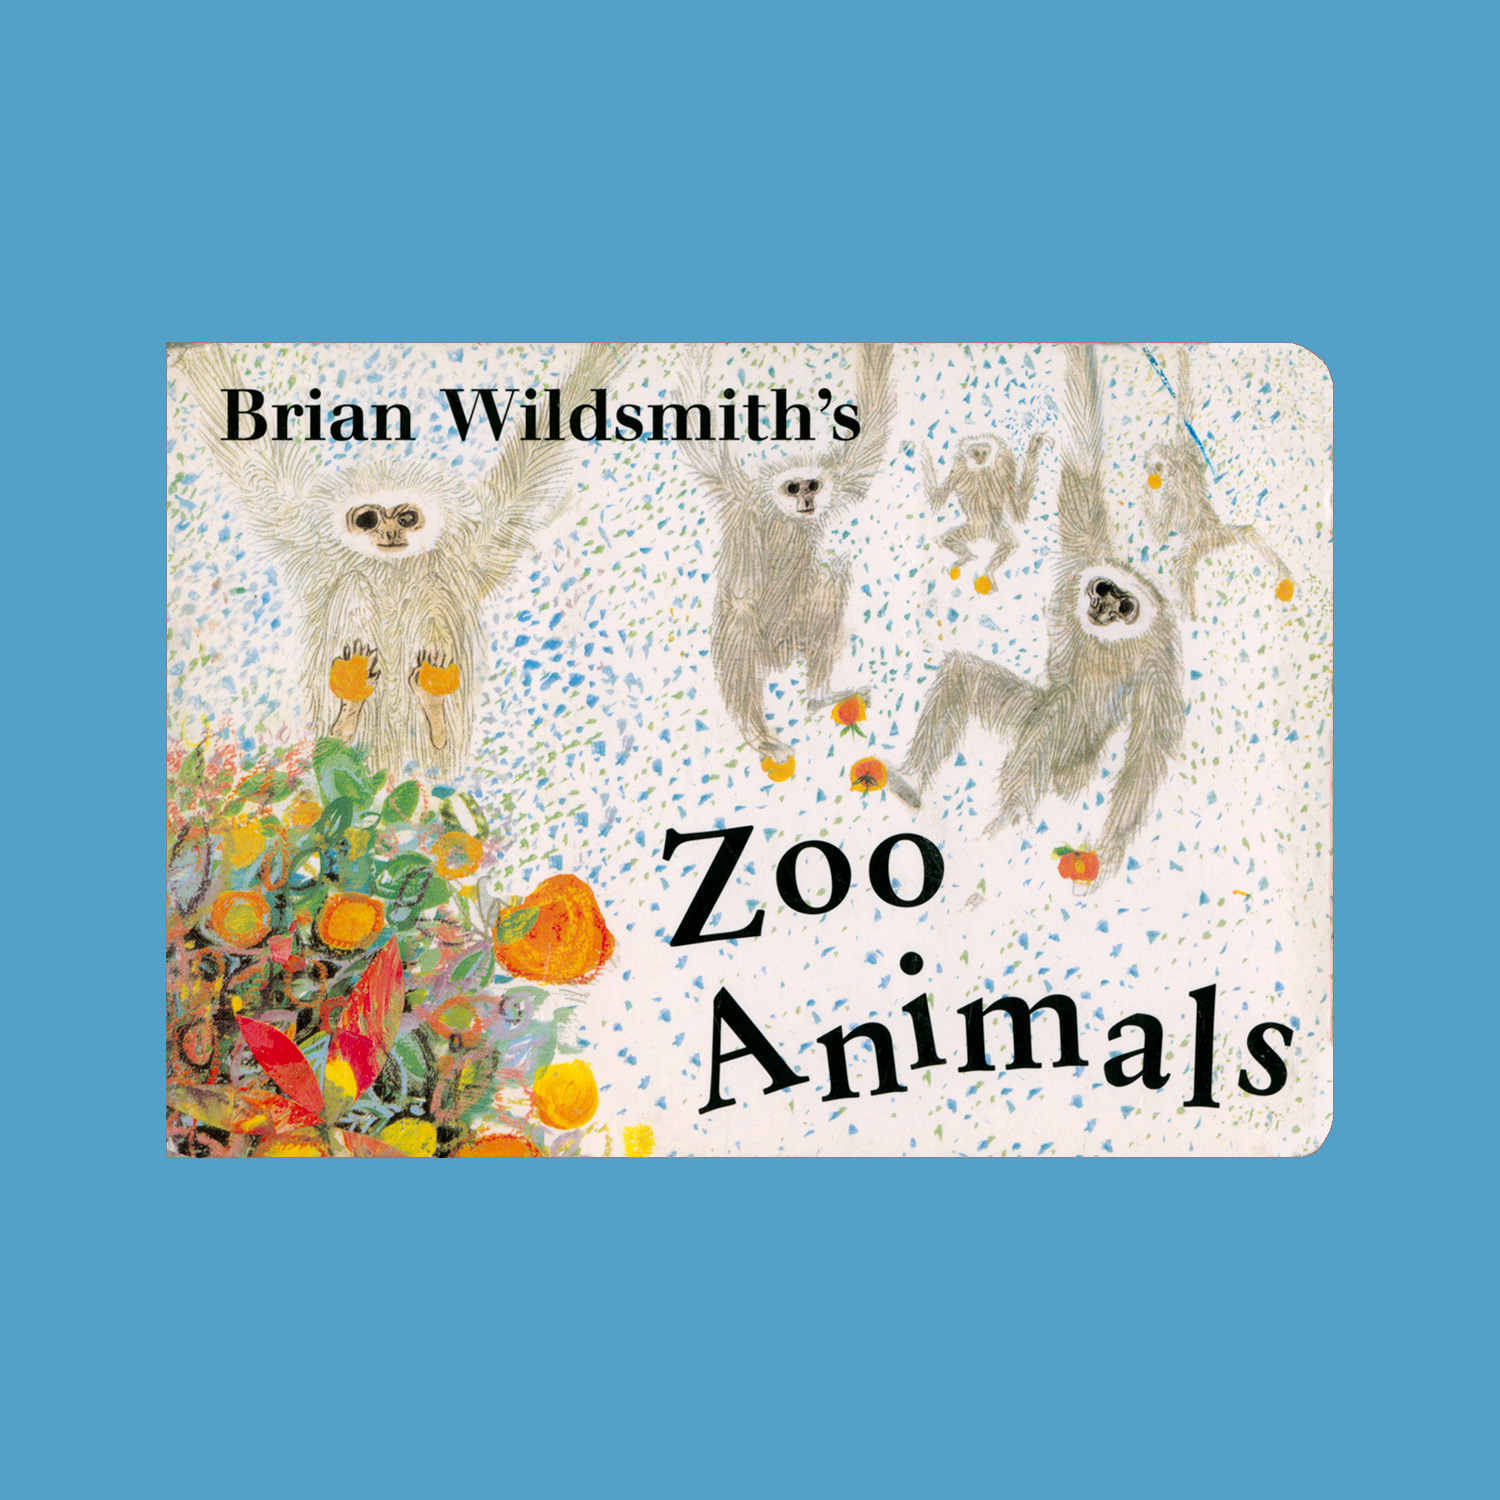 """BRIAN WILDSMITH'S ZOO ANIMALS - 2002""""With illustrations first published in Animal Tricks, The Owl and the Woodpecker and other stories, Zoo Animals by Brian Wildsmith introduces youngsters to 28 animals (one per page) from around the world, including polar bears, meerkats and spider monkeys. Bite-size blurbs accompany each illustration and present basic facts ("""